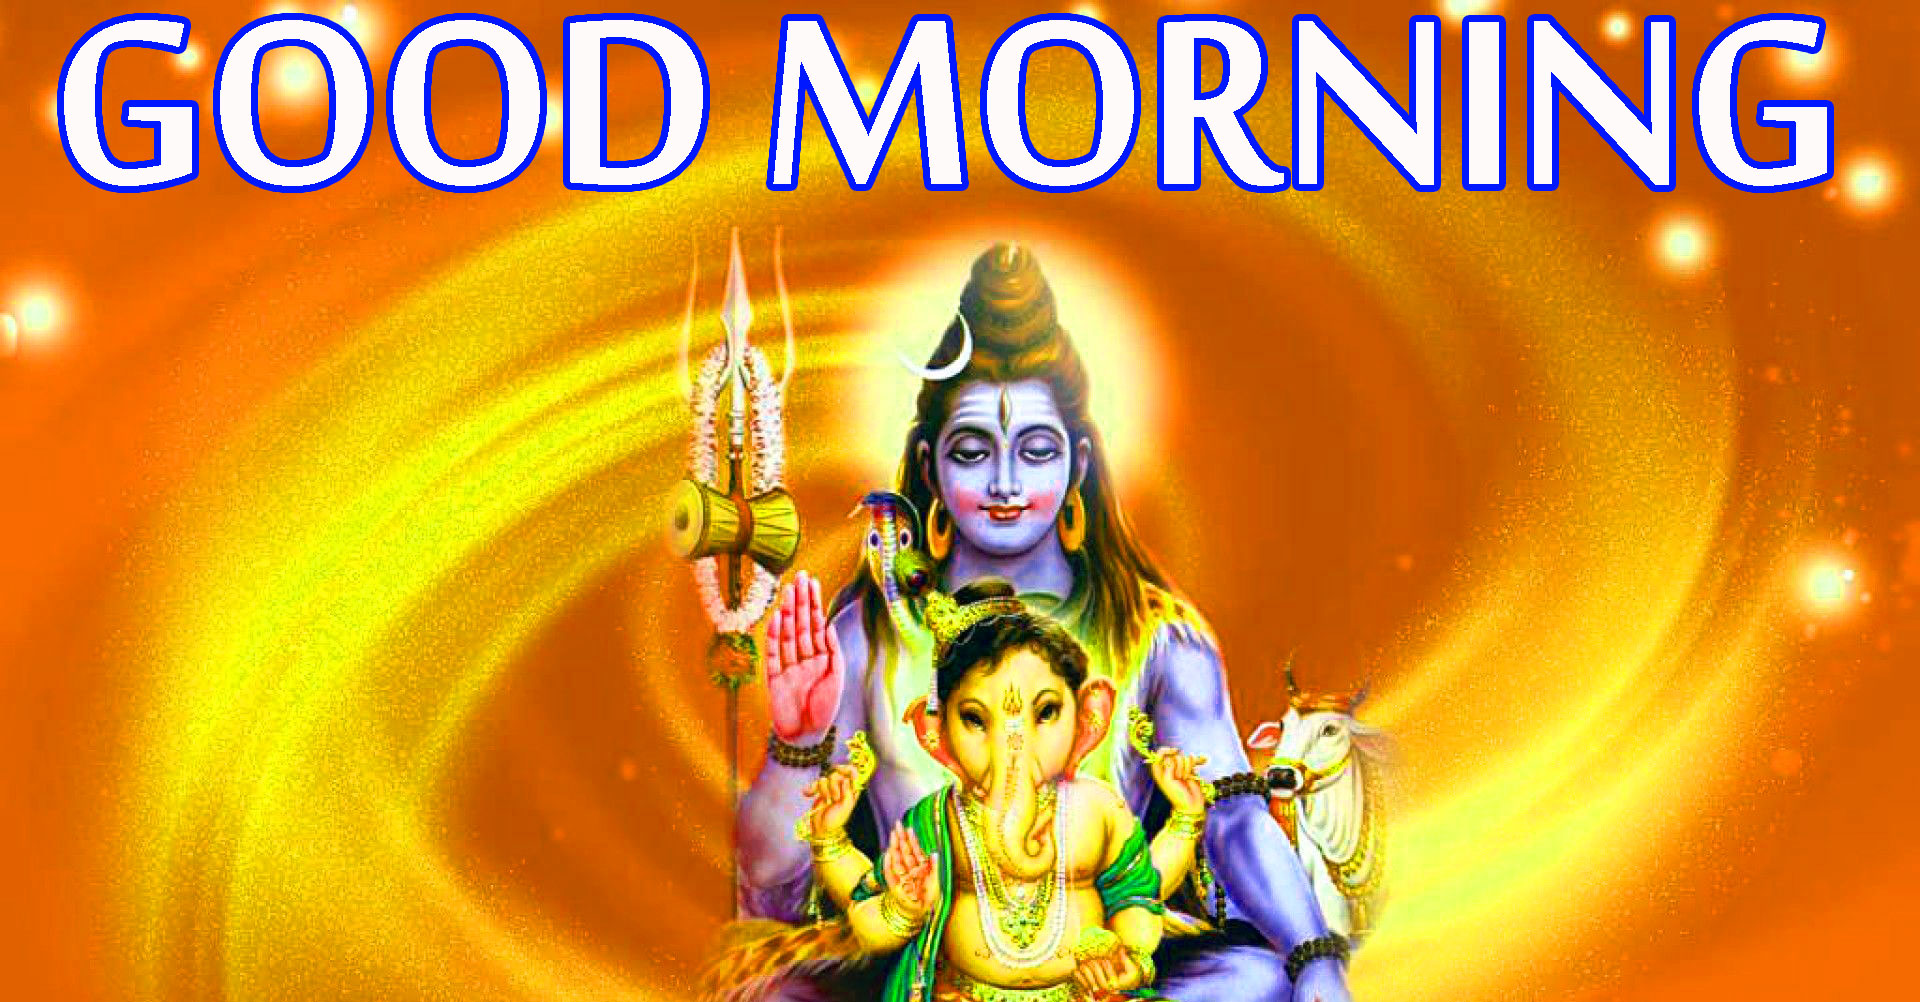 Hindu God Religious Good Morning Images Wallpaper Pics HD